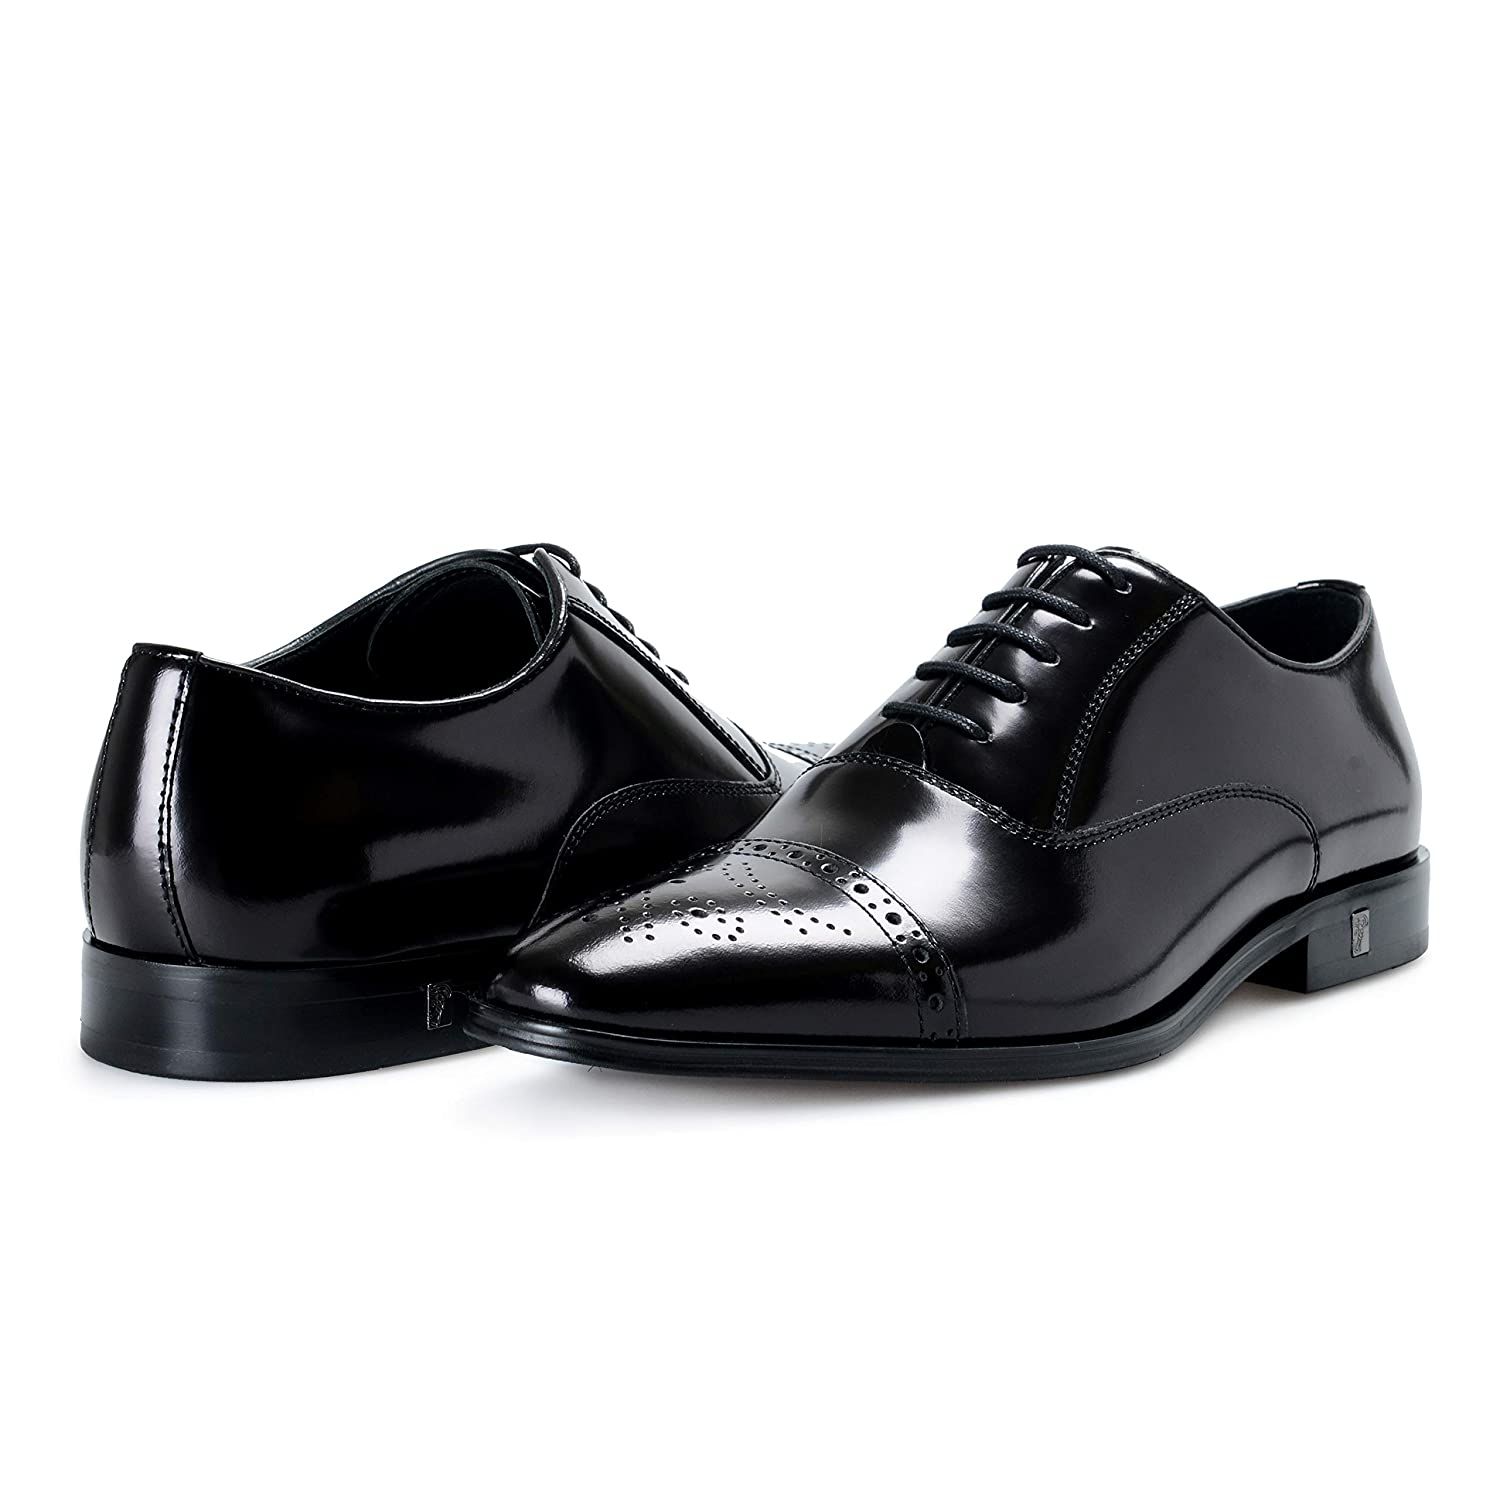 524d2aa3d675b Amazon.com: Versace Collection Men's Black Leather Lace Up Wing Tip ...